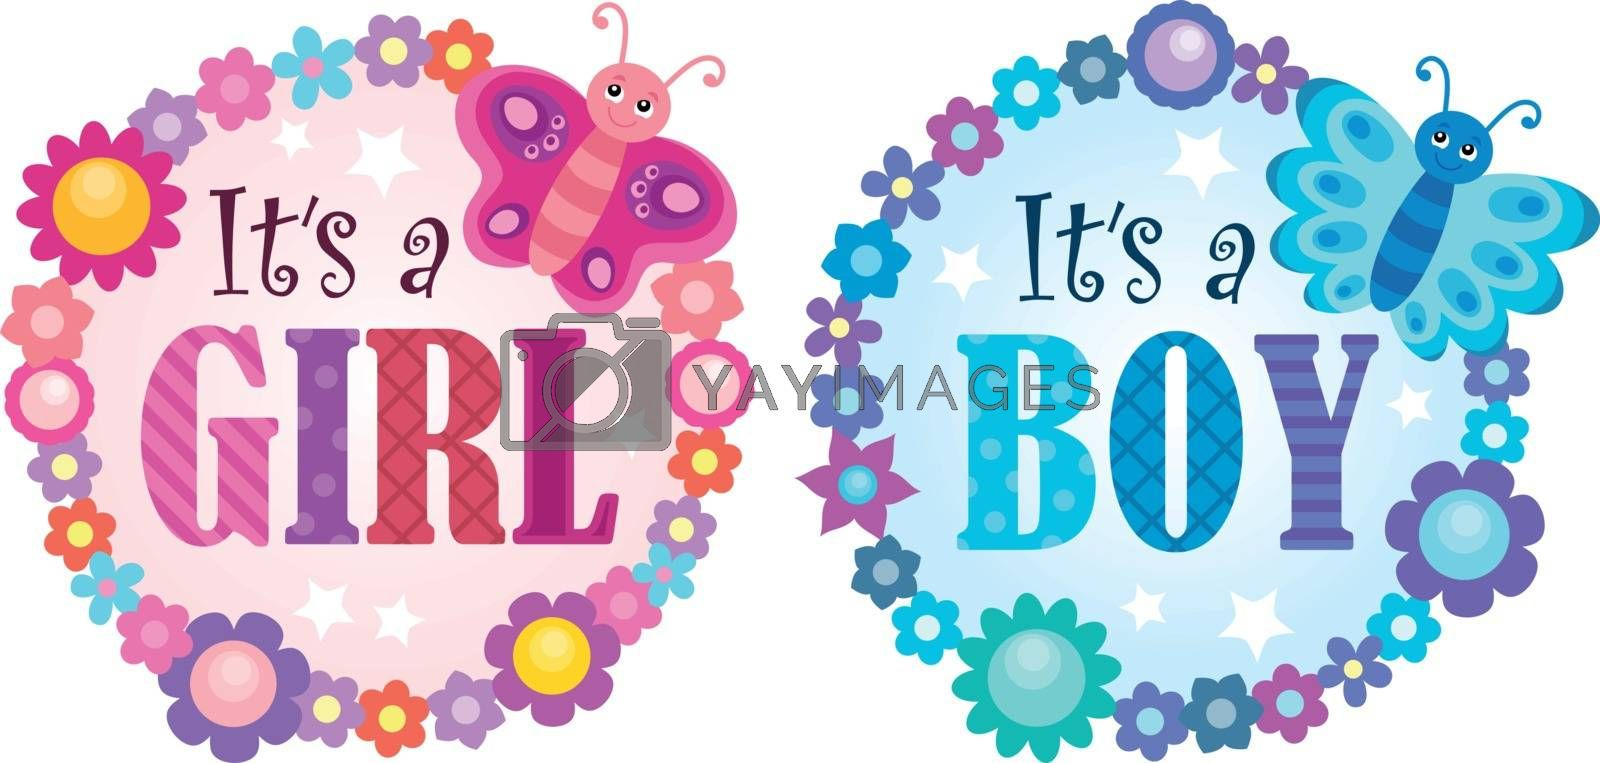 Is it a girl or boy theme 5 - eps10 vector illustration.